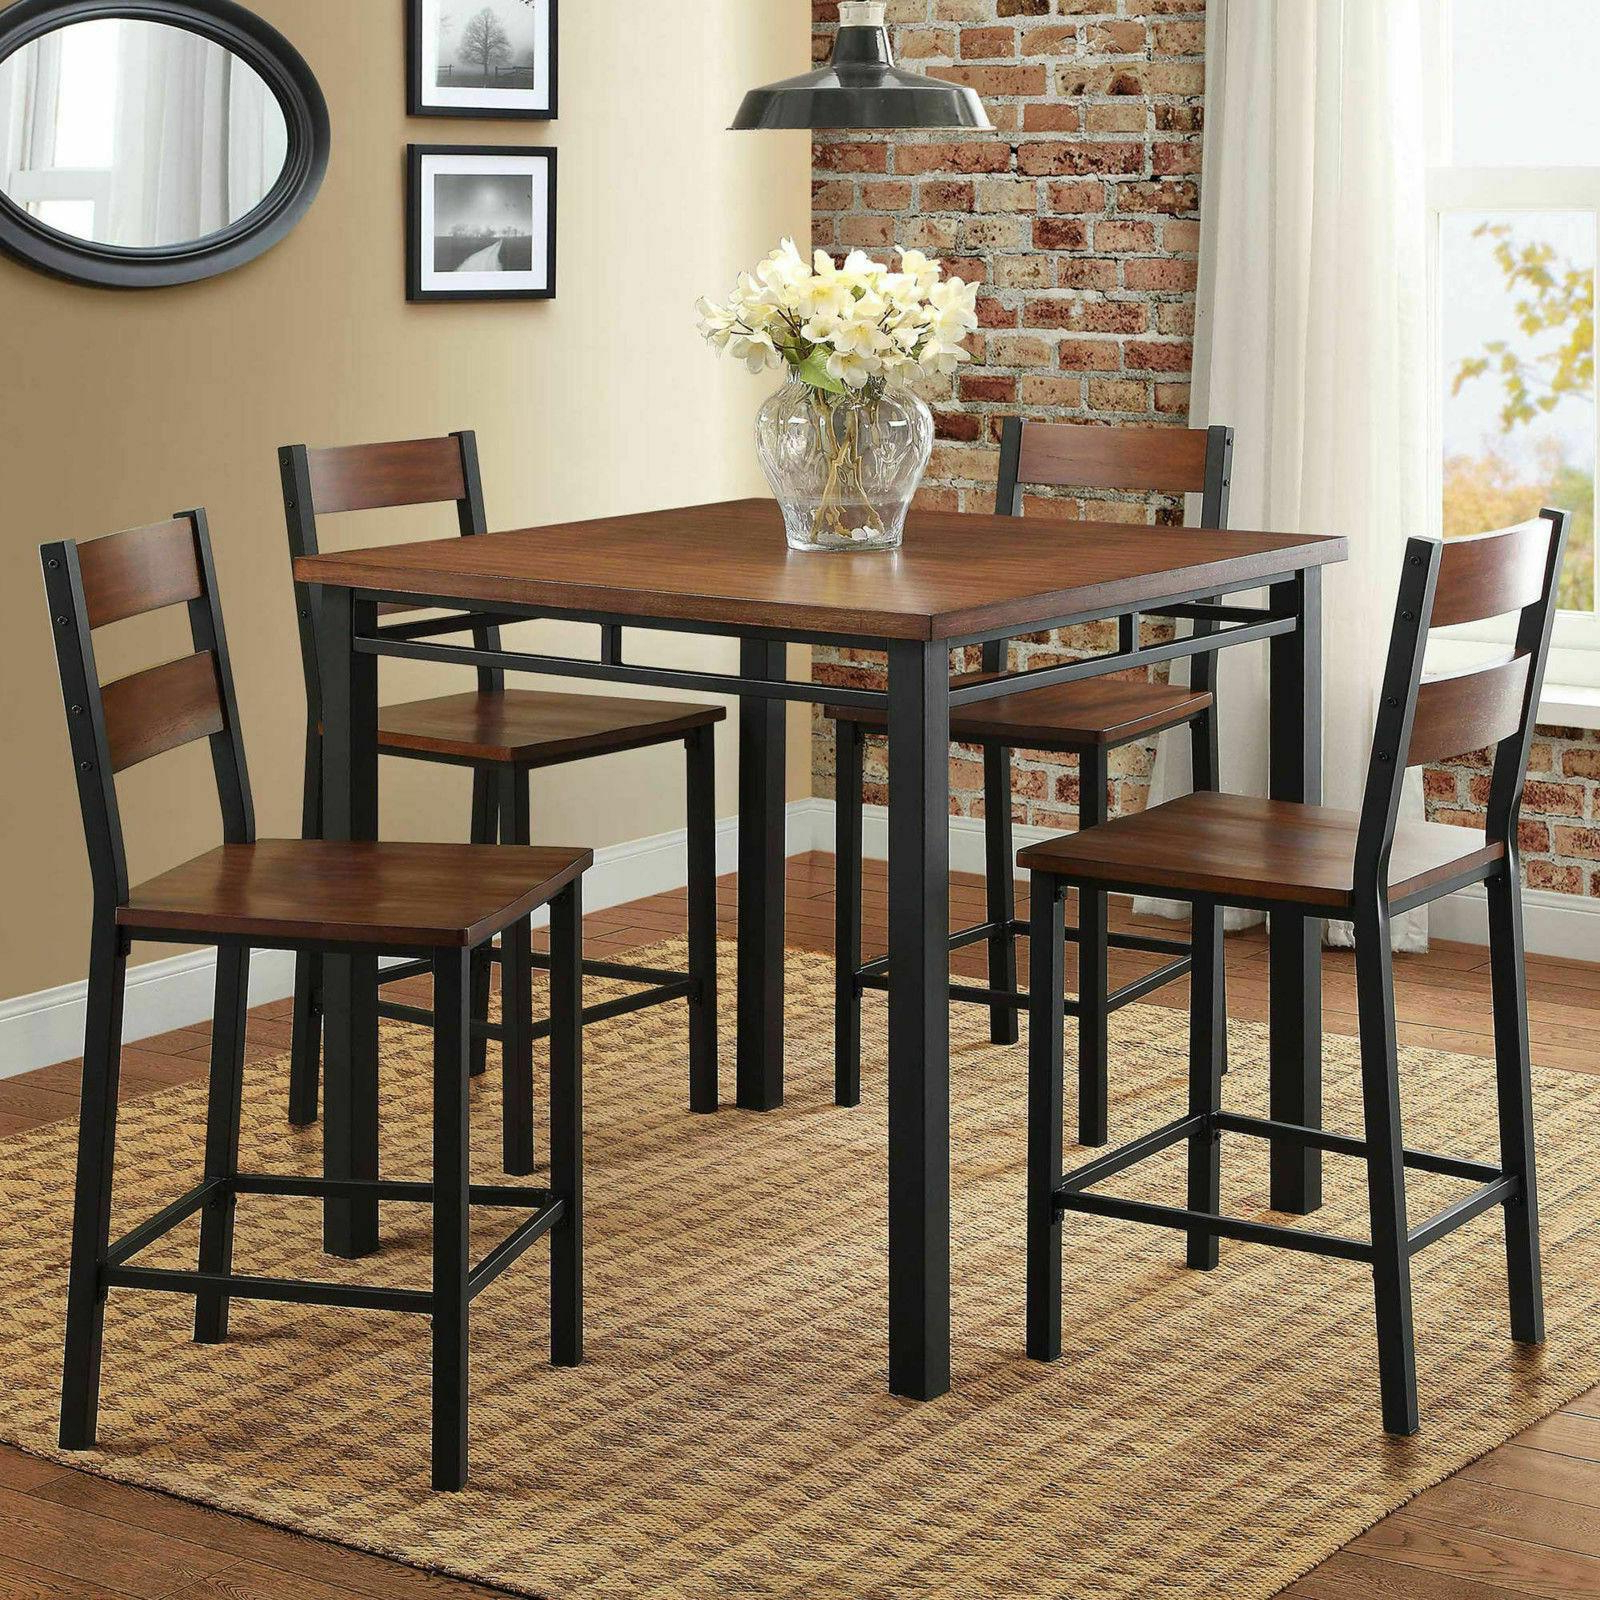 Dining Set Counter Height Table 5 Piece Regarding Preferred Noyes 5 Piece Dining Sets (View 17 of 20)